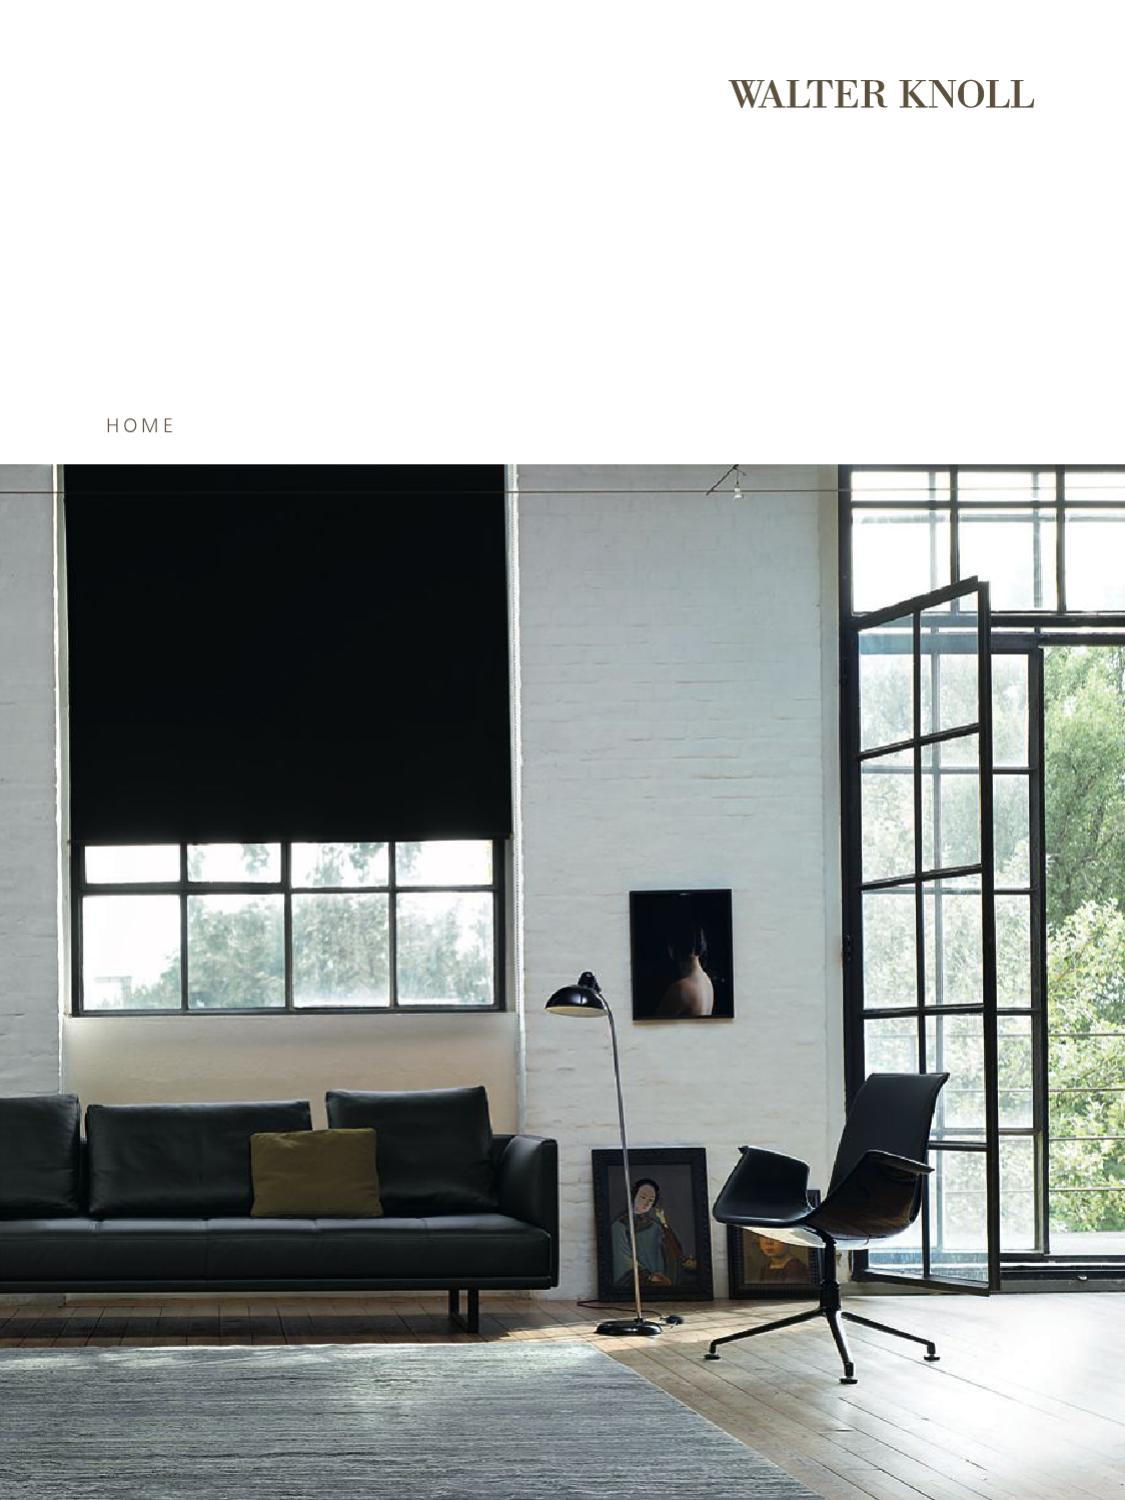 walter knoll home2011 by peter schumacher issuu. Black Bedroom Furniture Sets. Home Design Ideas